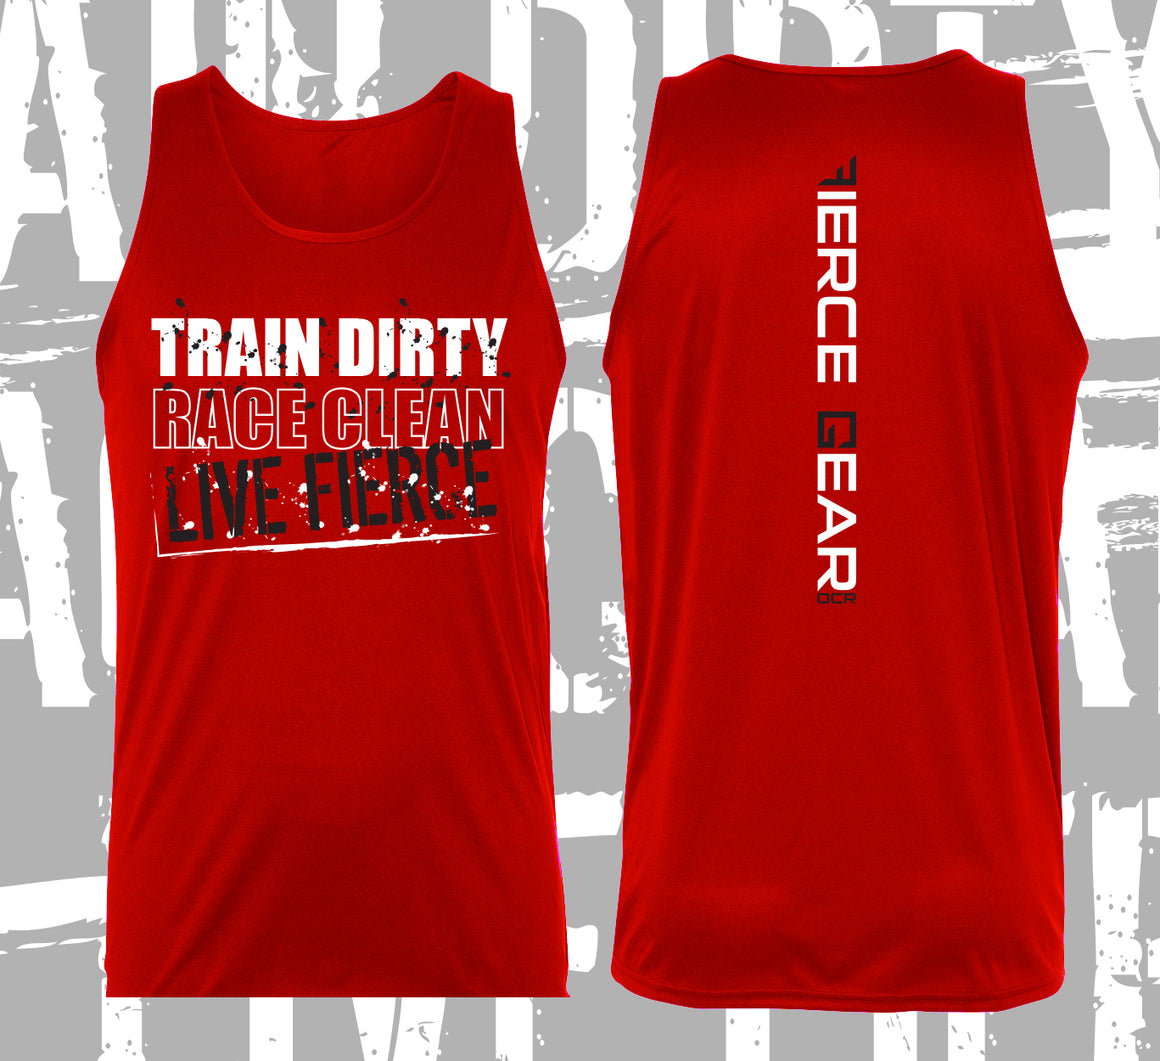 Train DIRTY, Race CLEAN Performance Tank - Men's